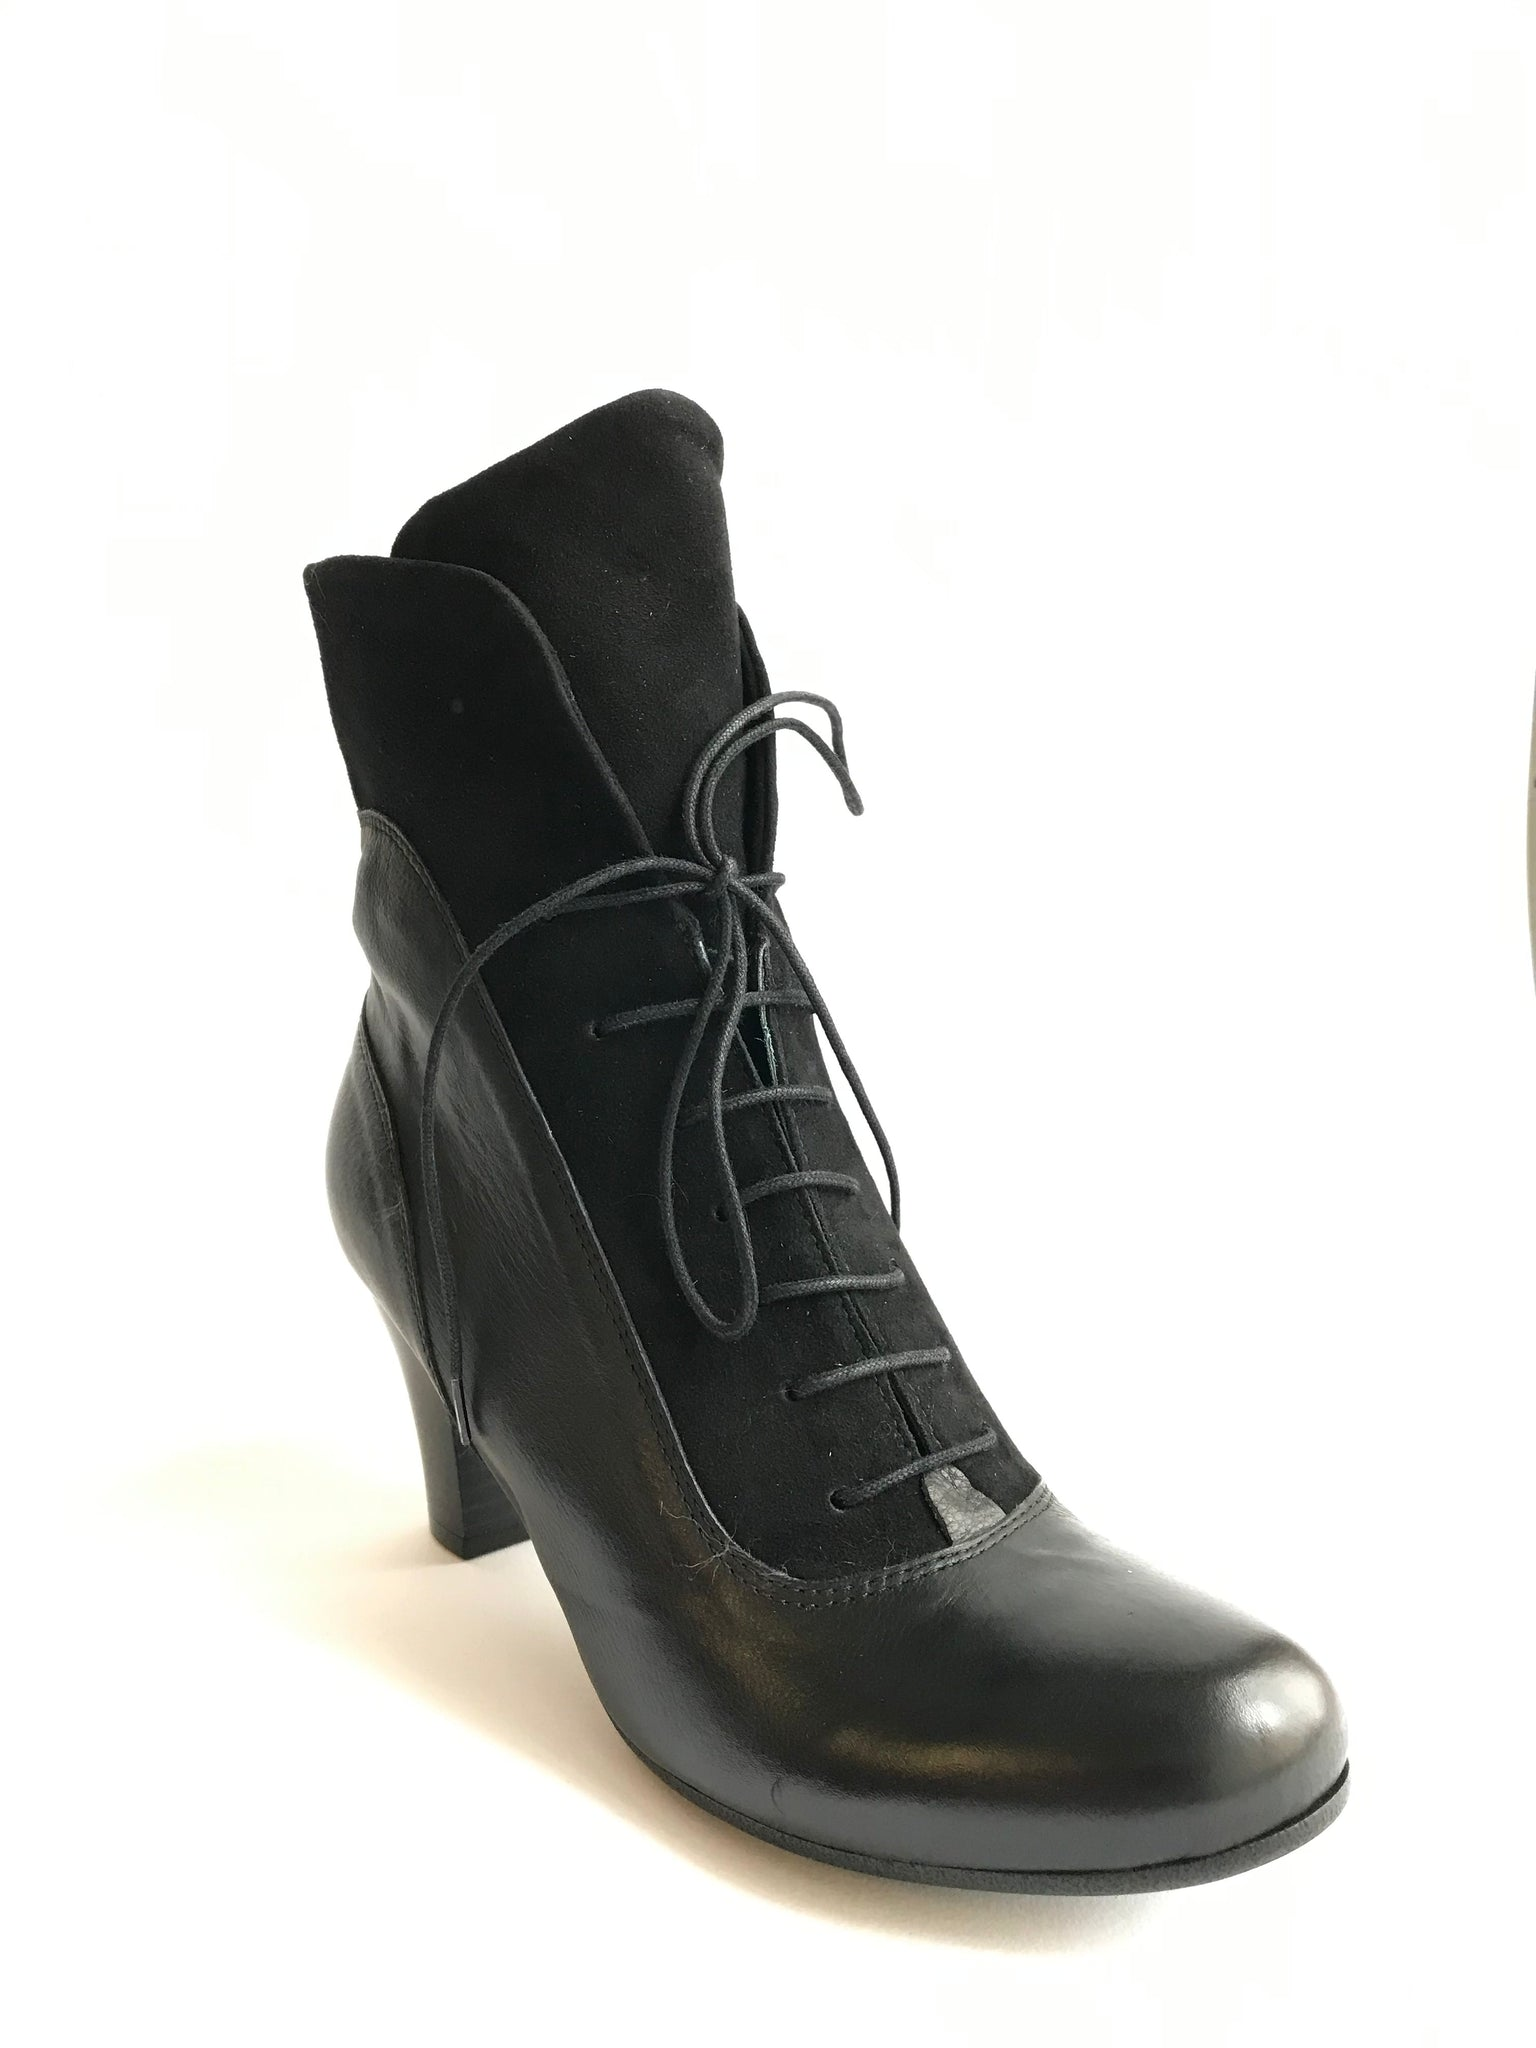 Vitello Camoscio Black - Imeldas Shoes Norwich